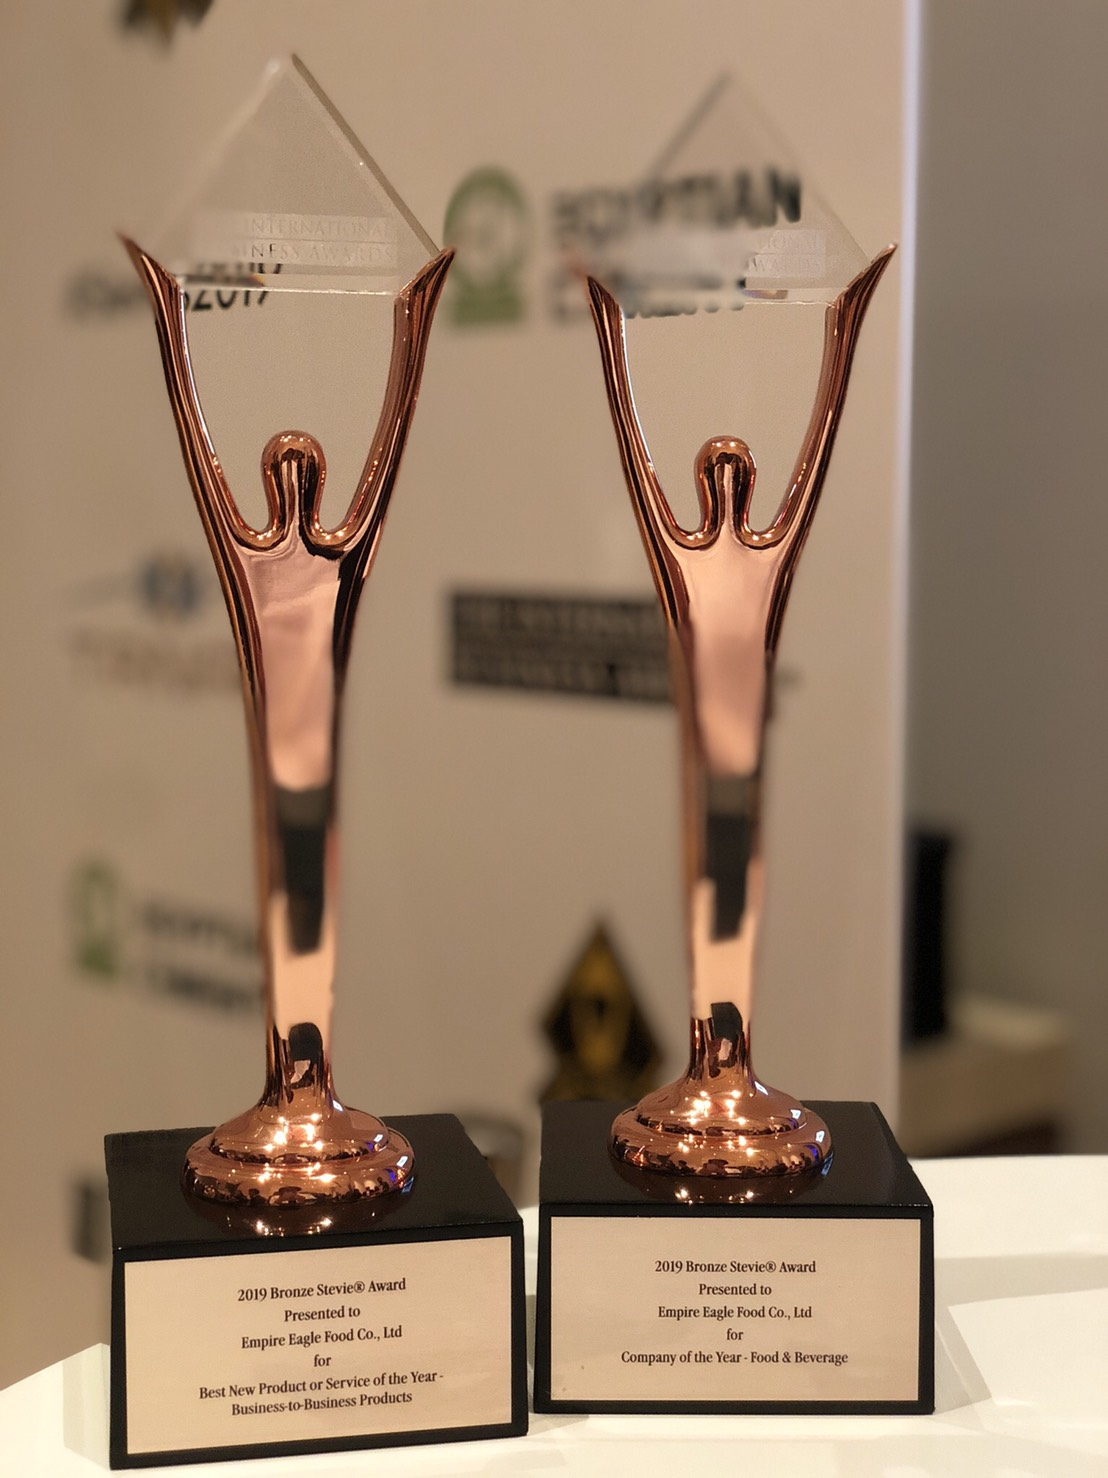 Empire Eagle Food wins 2019 IBA @Steive Award